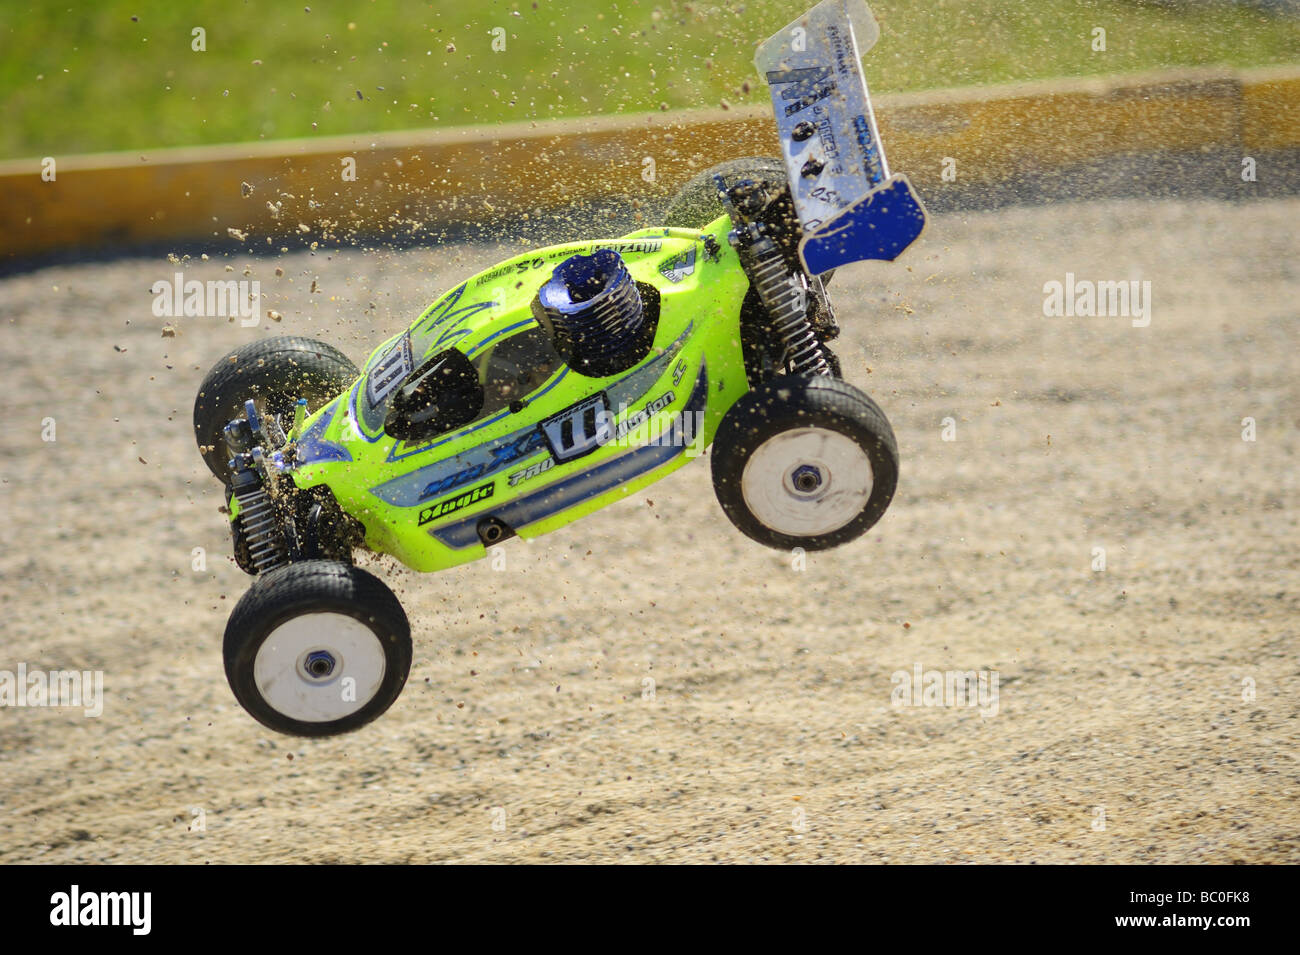 Action shot of a radio-controlled buggy racing in the European Championships. Motion blur shows the speed it's travelling. - Stock Image